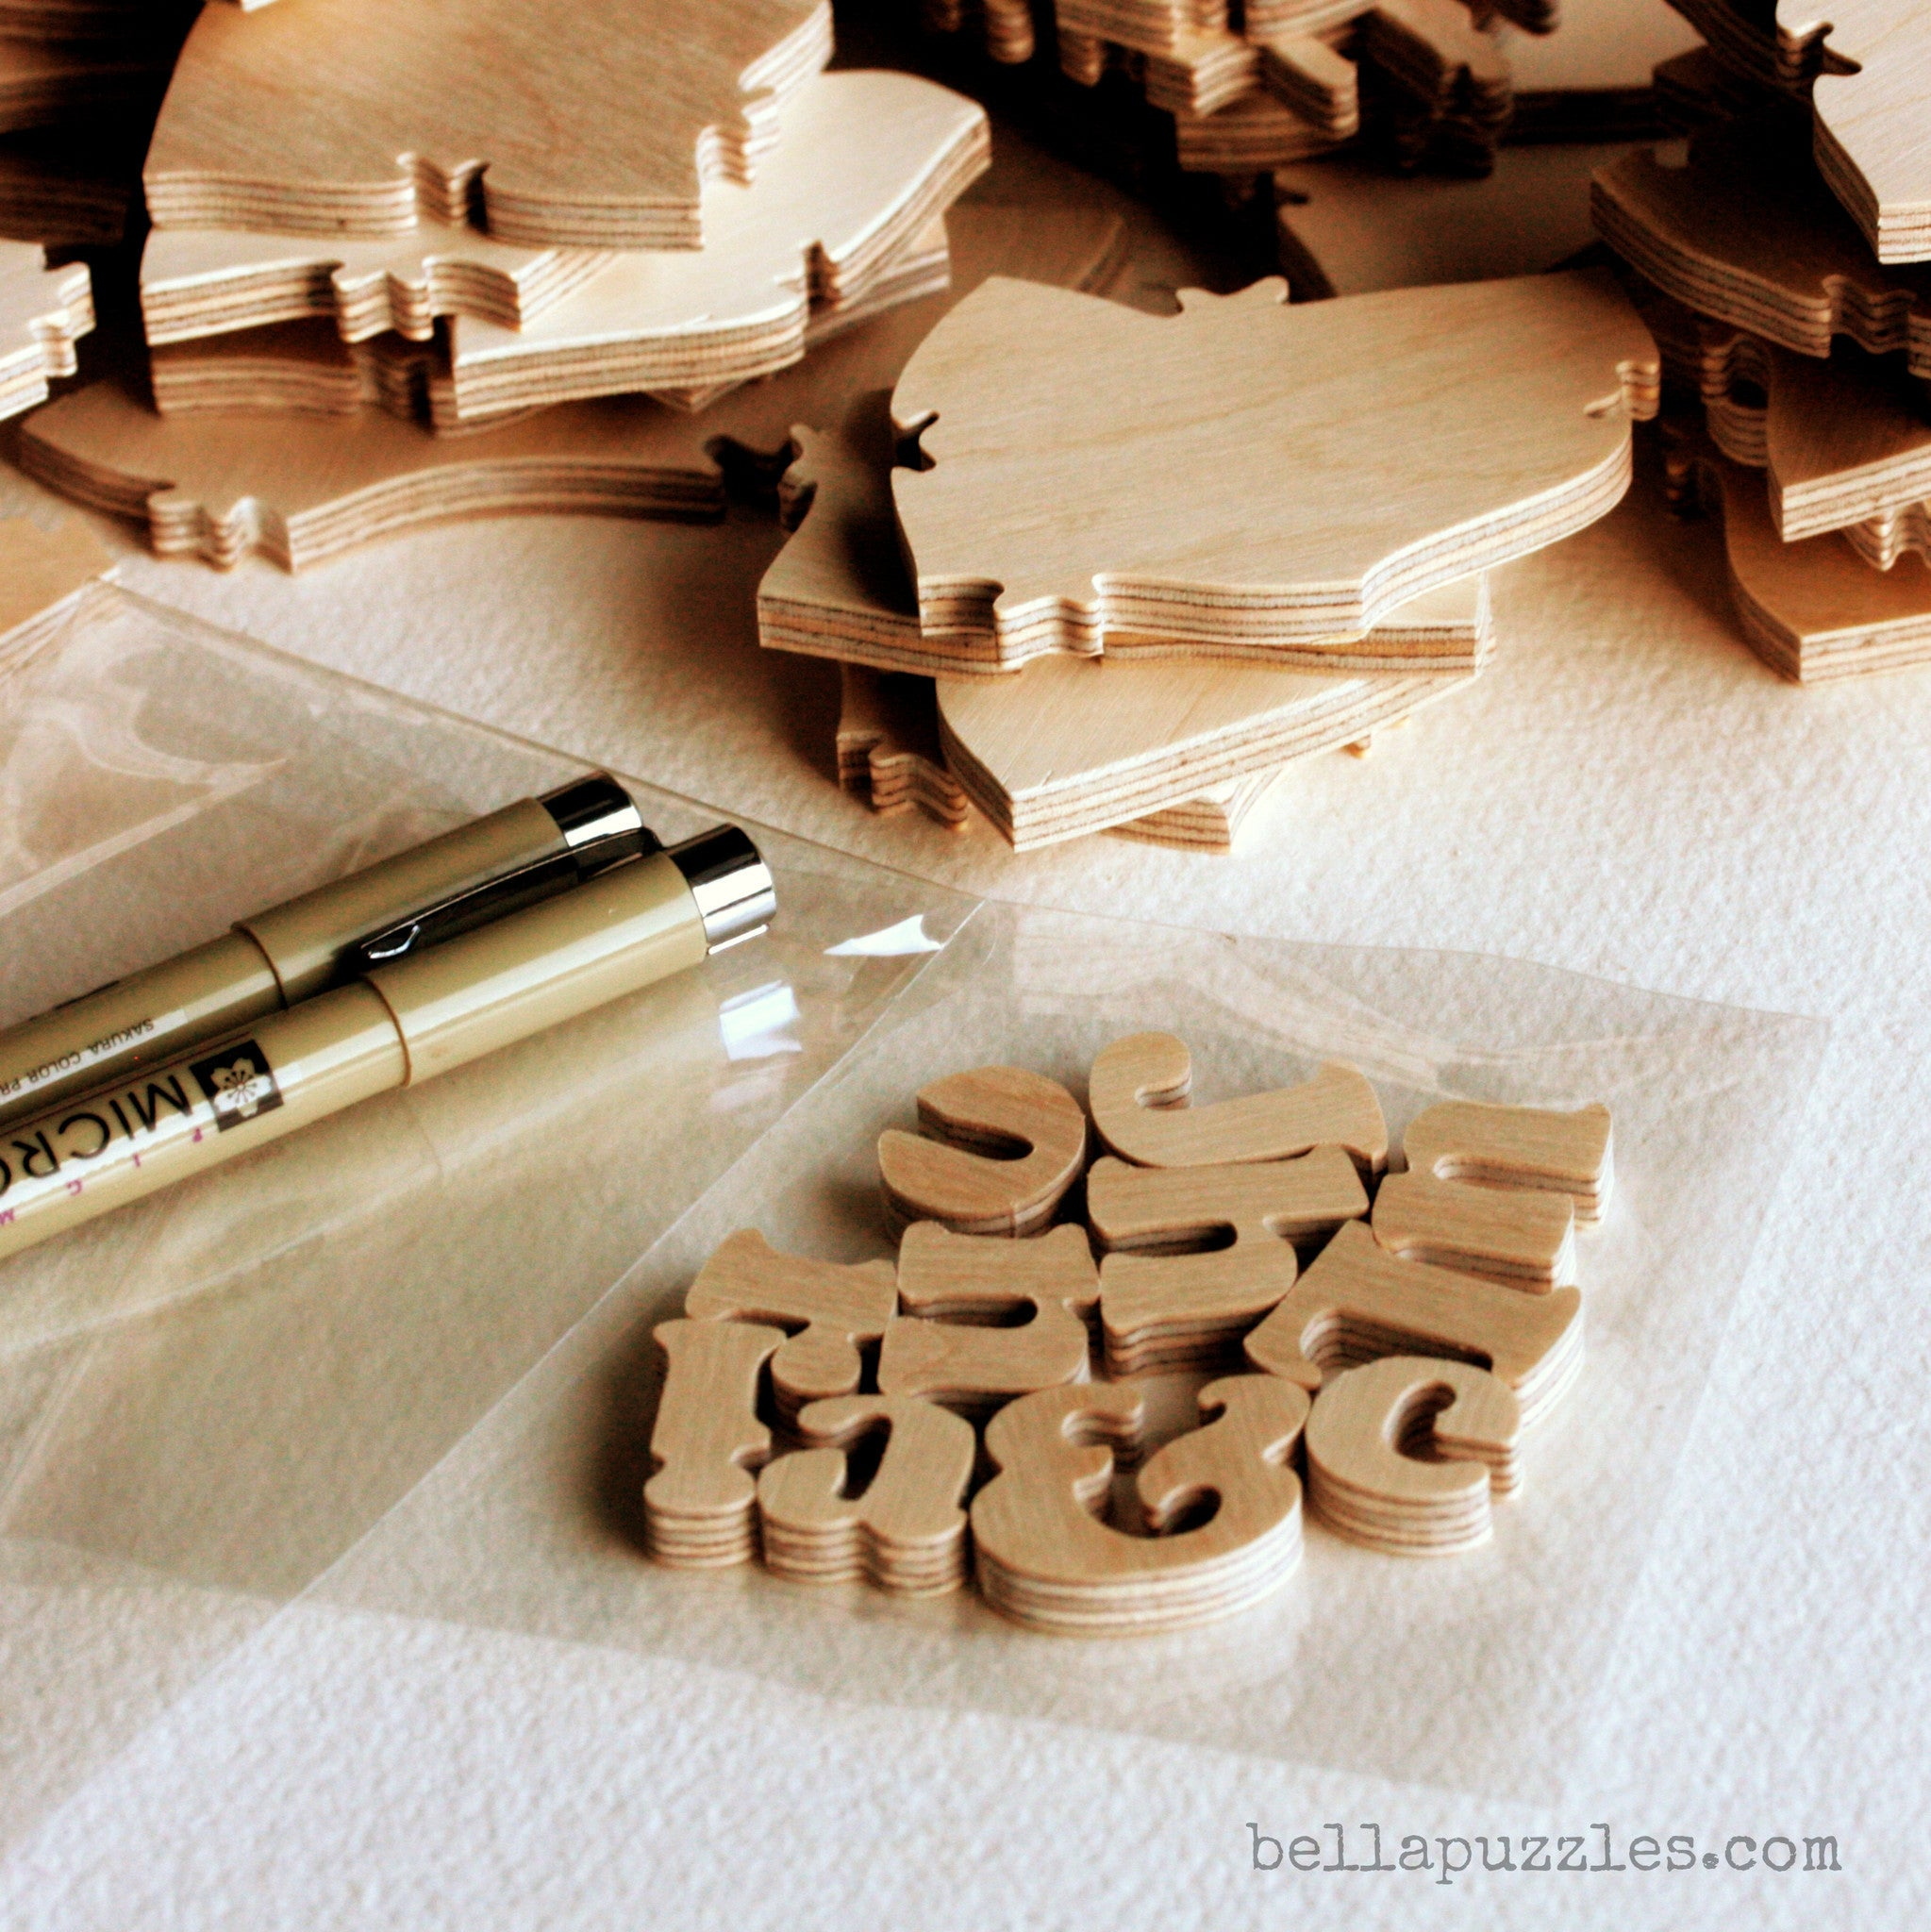 Handcrafted wooden puzzle pieces, pens, and letter-shaped pieces from a Bella Puzzle. A wedding guestbook alternative.